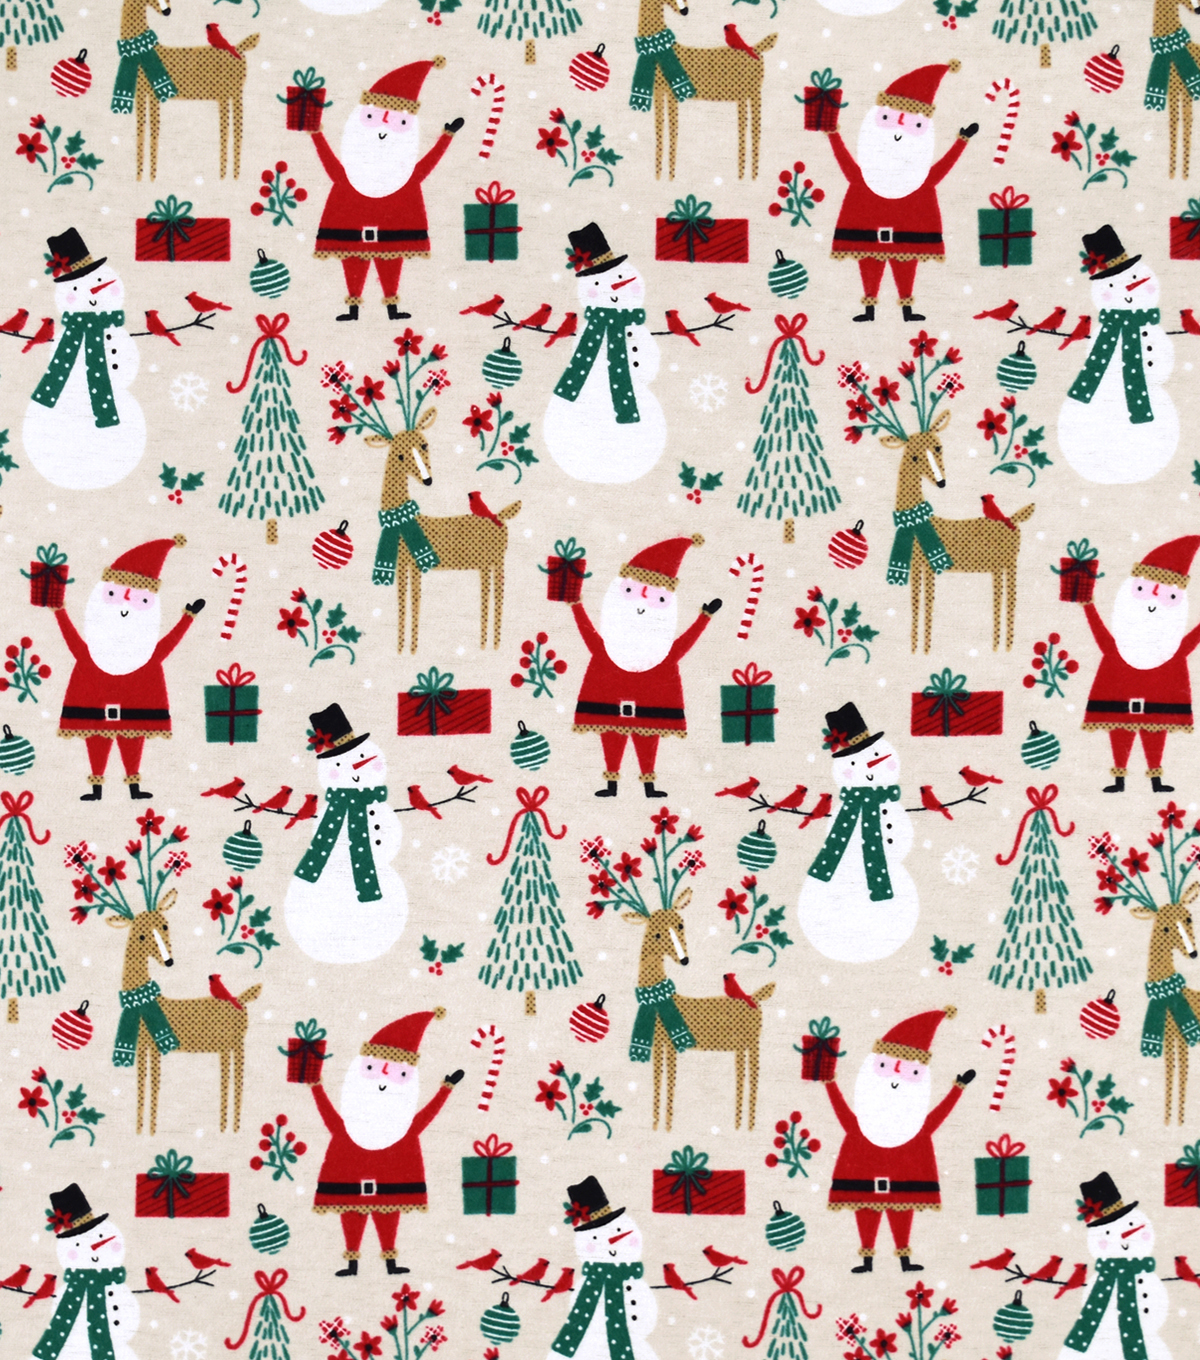 Snuggle Flannel Fabric-Santa And Snowman On Tan